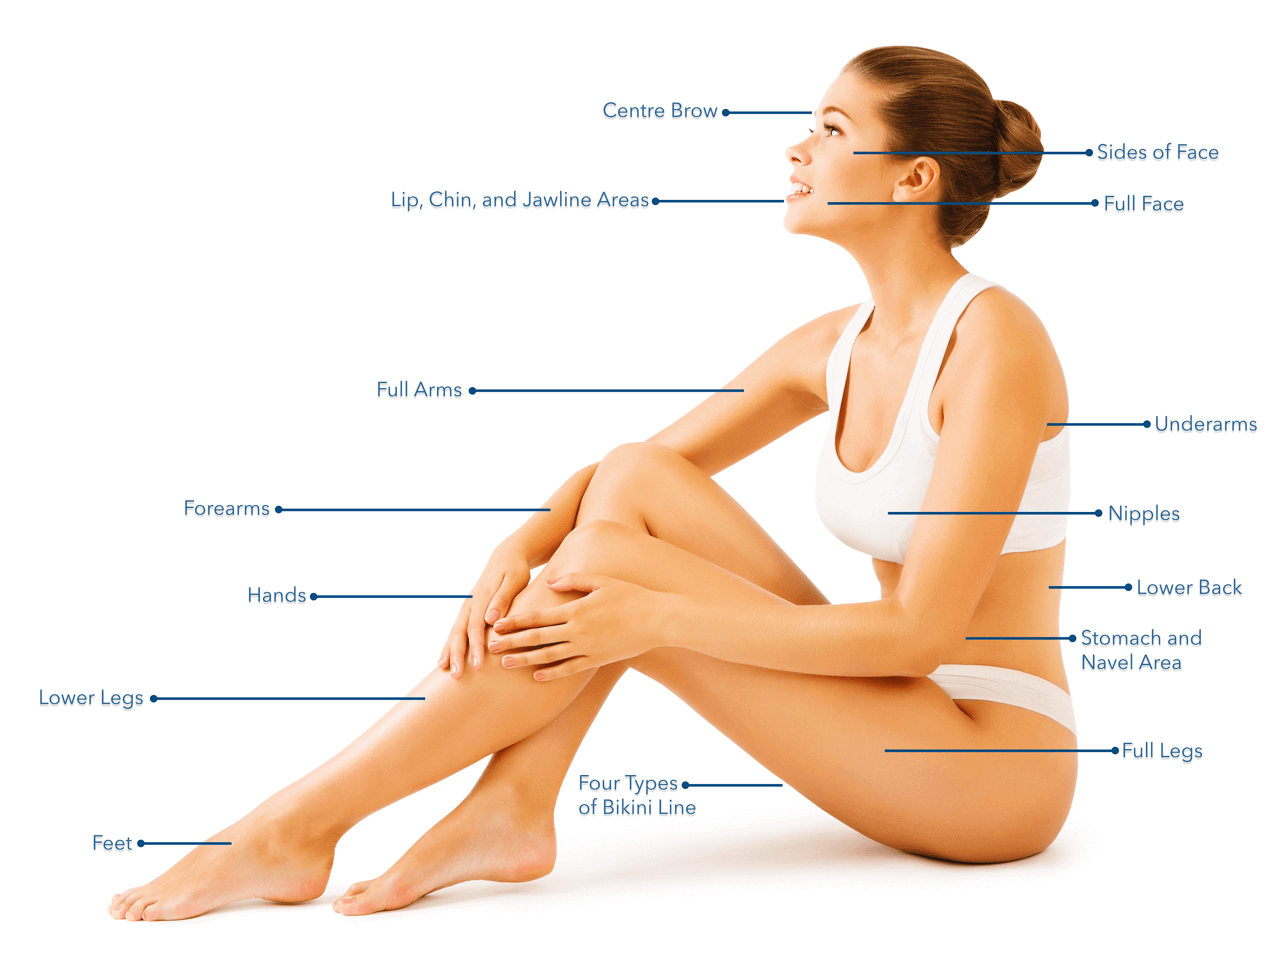 Hair Removal Application